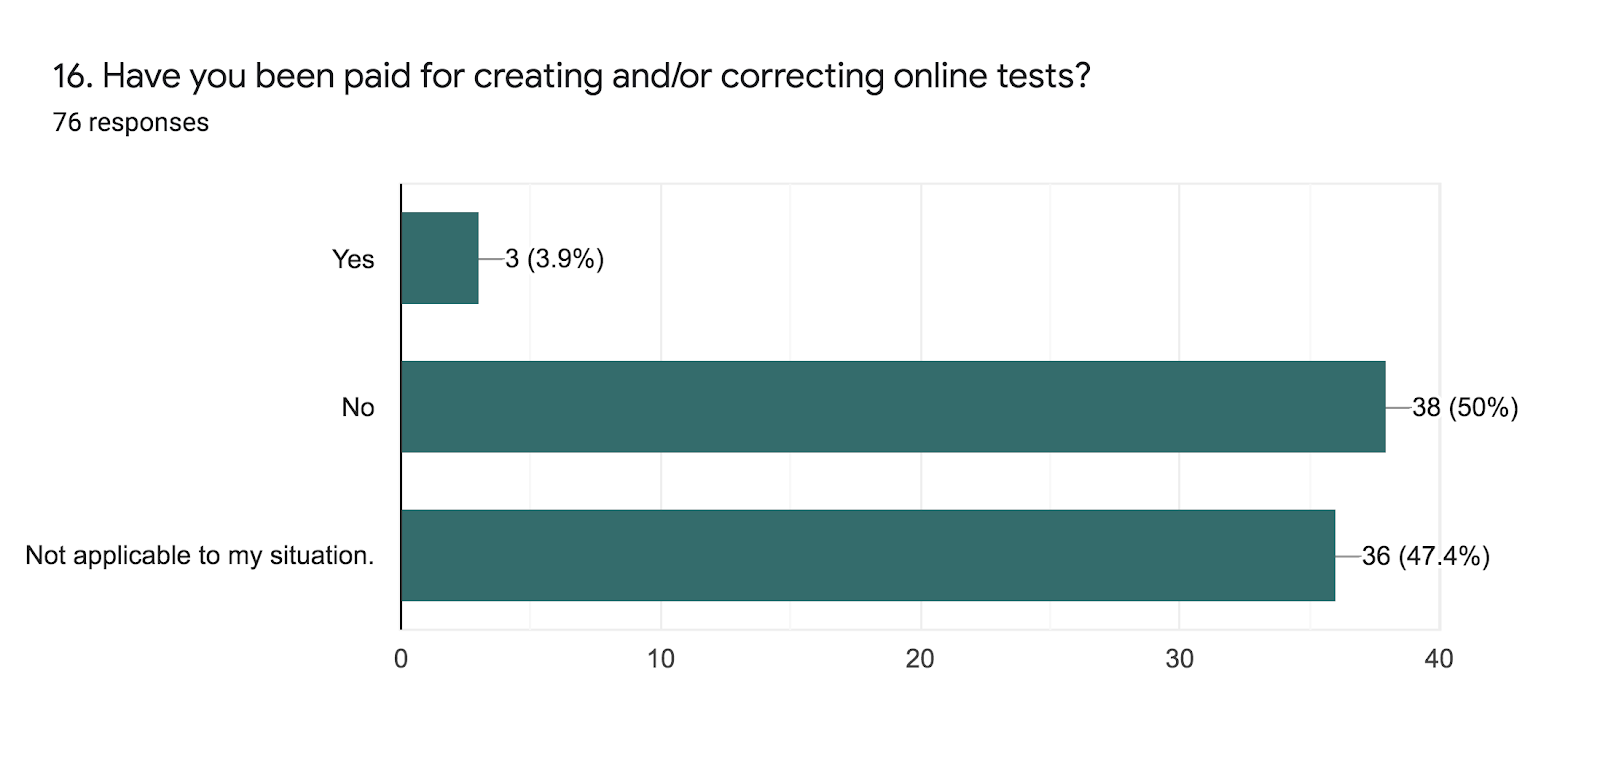 Forms response chart. Question title: 16. Have you been paid for creating and/or correcting online tests?. Number of responses: 76 responses.